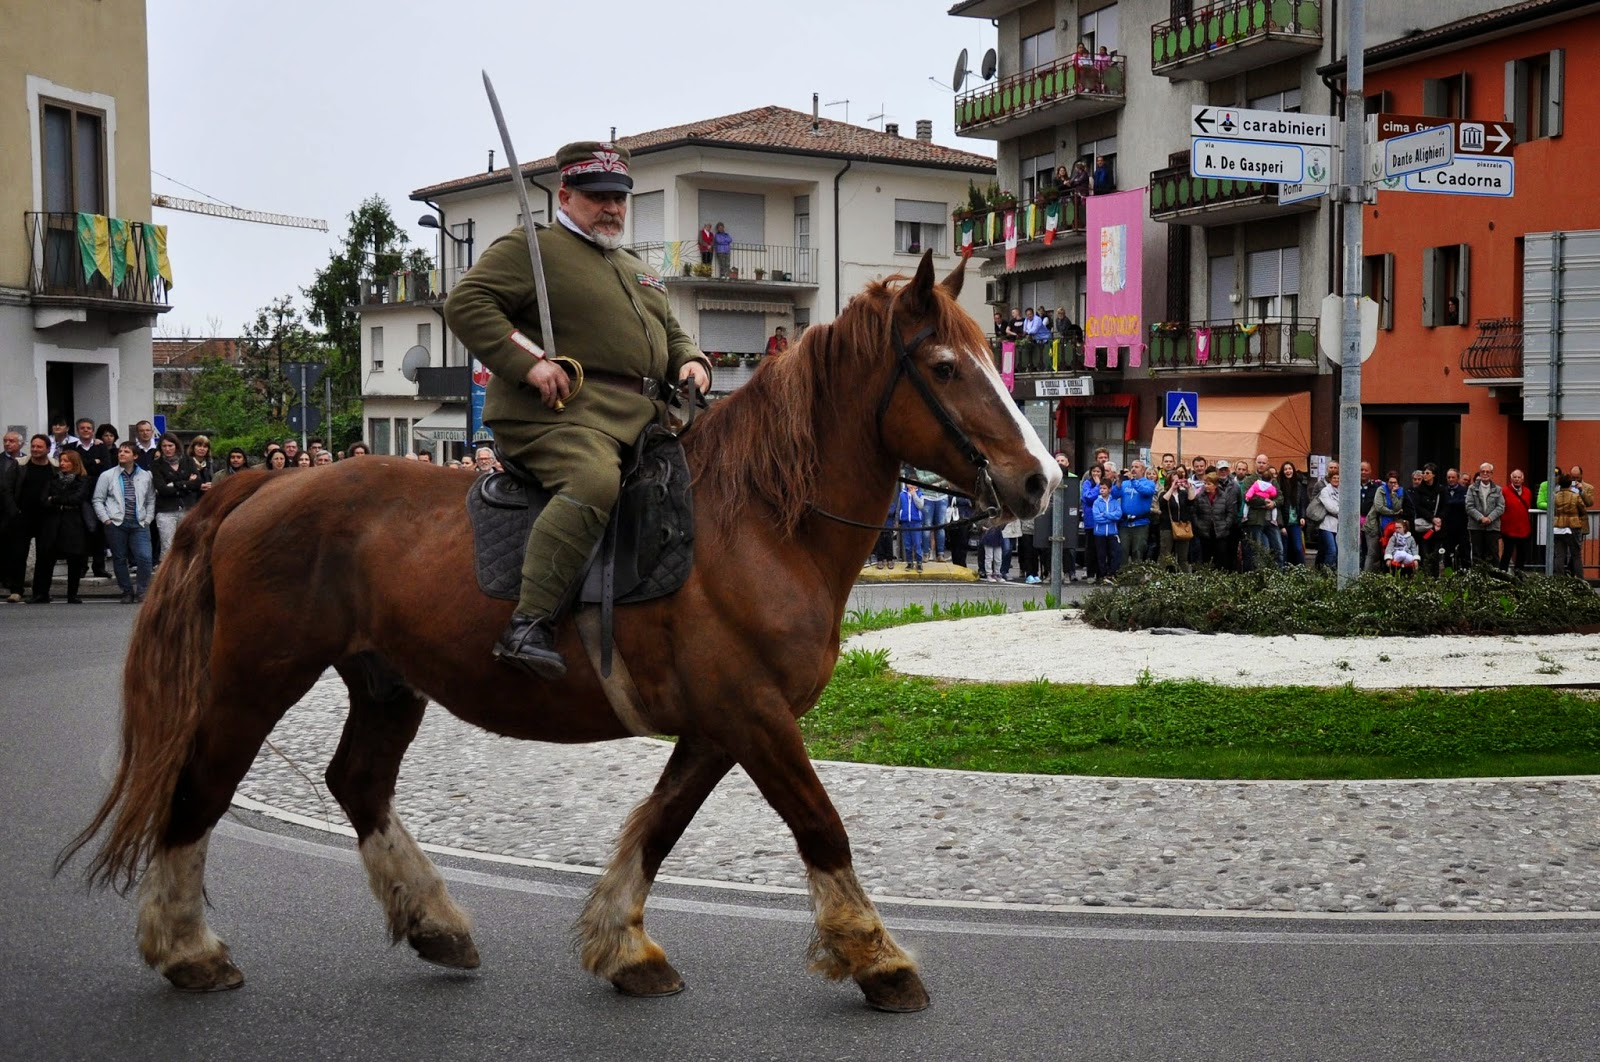 A commander on his horse at the Parade, Donkey Race, Romano d'Ezzelino, Veneto, Italy